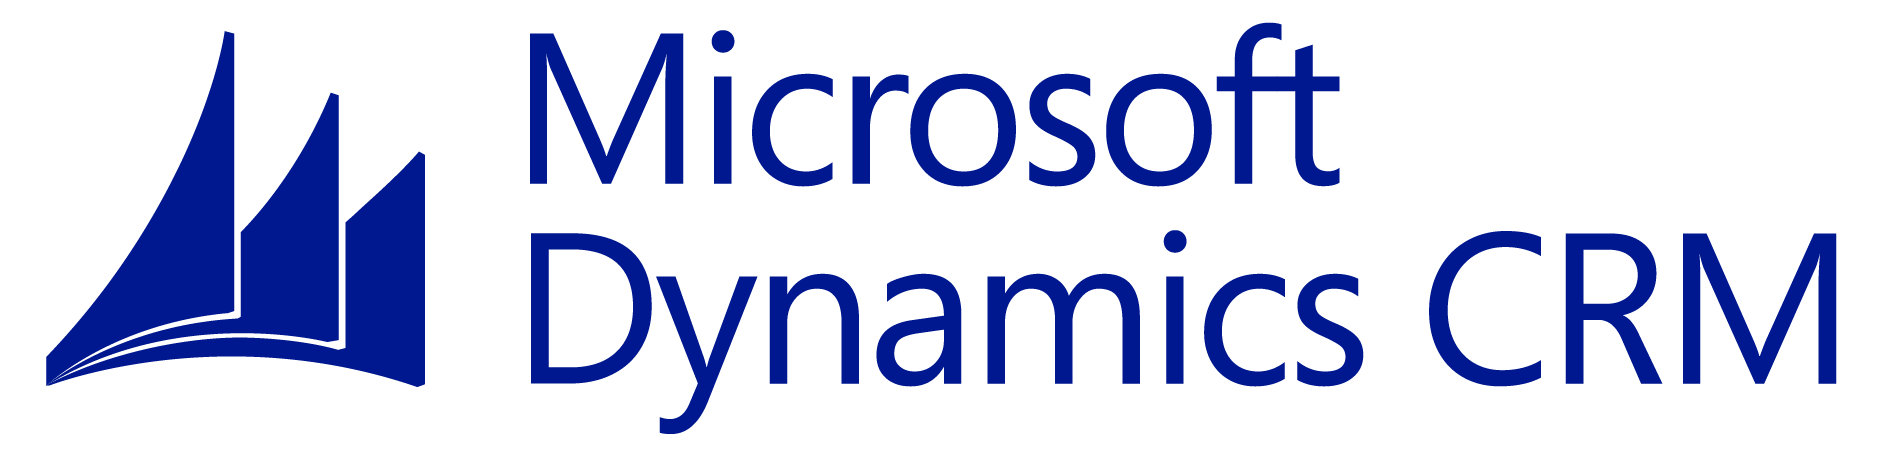 Microsoft Dynamics CRM Experts